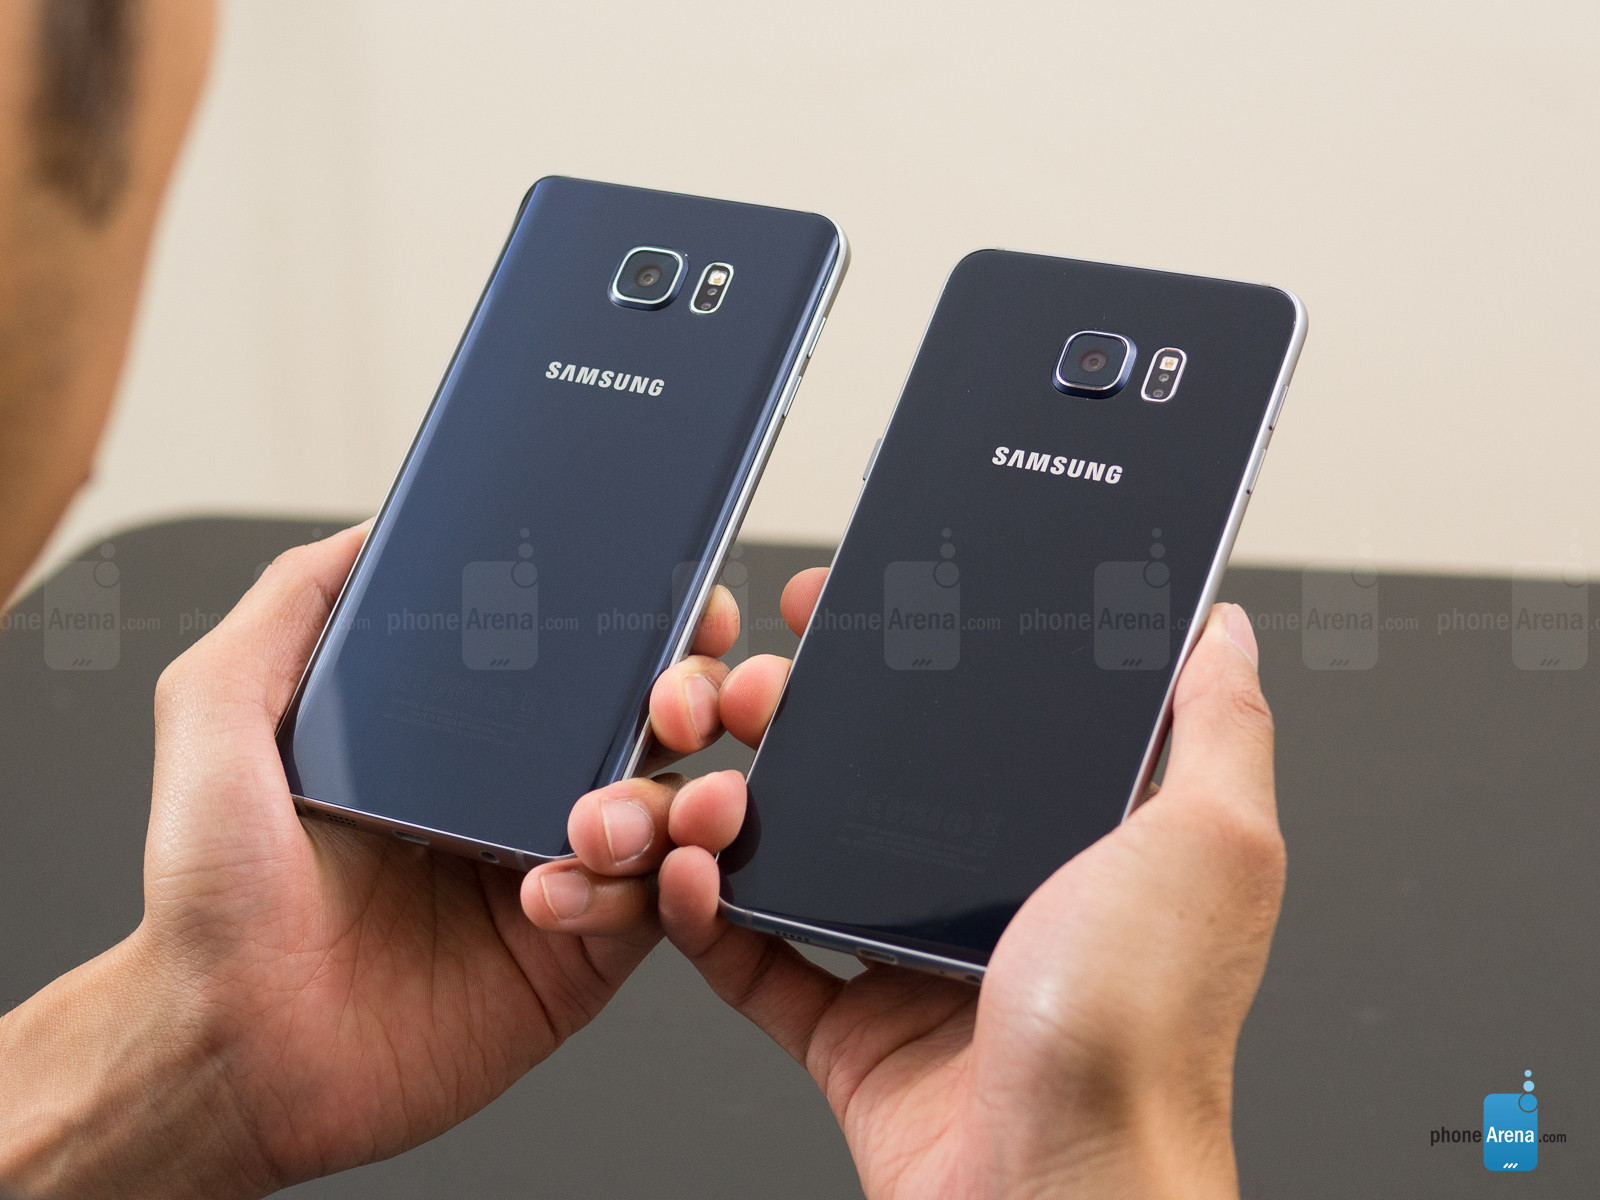 Samsung-Galaxy-Note5-vs-Galaxy-S6-edge3